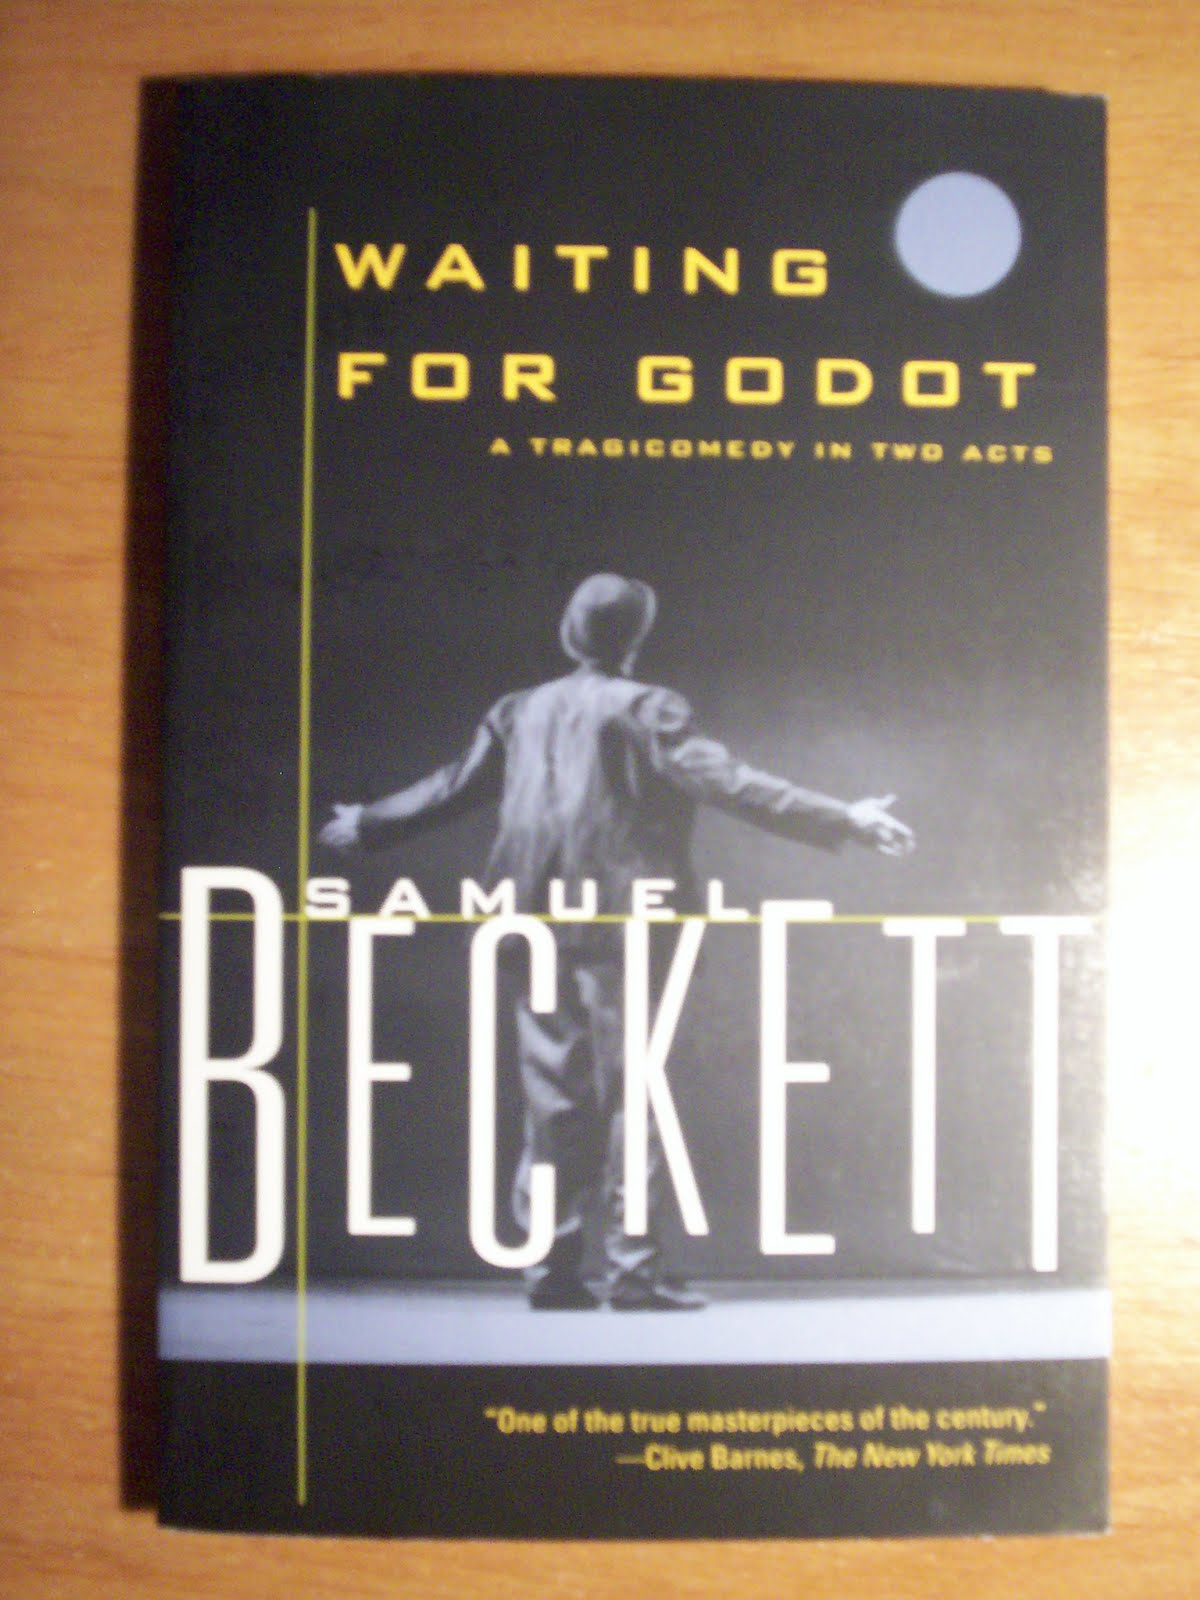 Waiting for godot novel. Book Review: Waiting for Godot